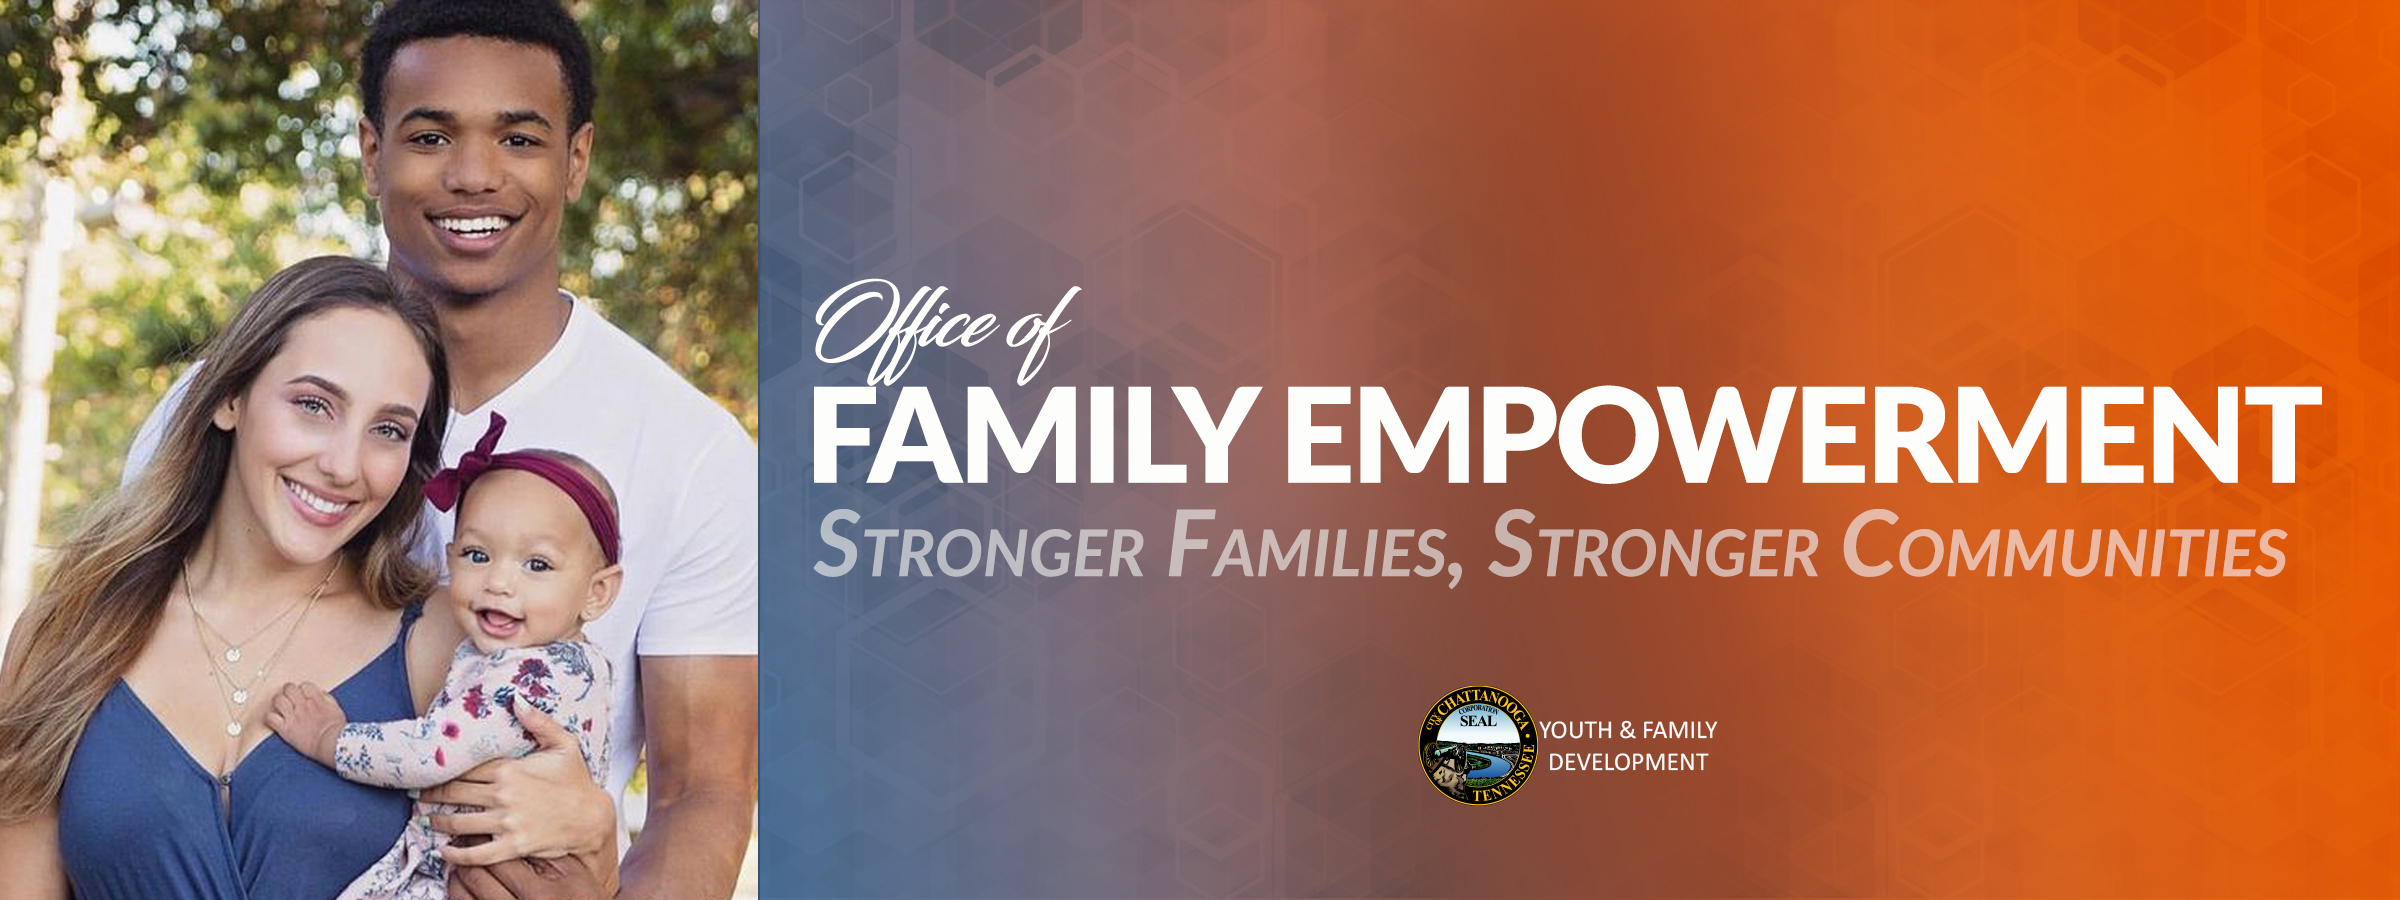 Ofe web banner O OF Family Empowerment